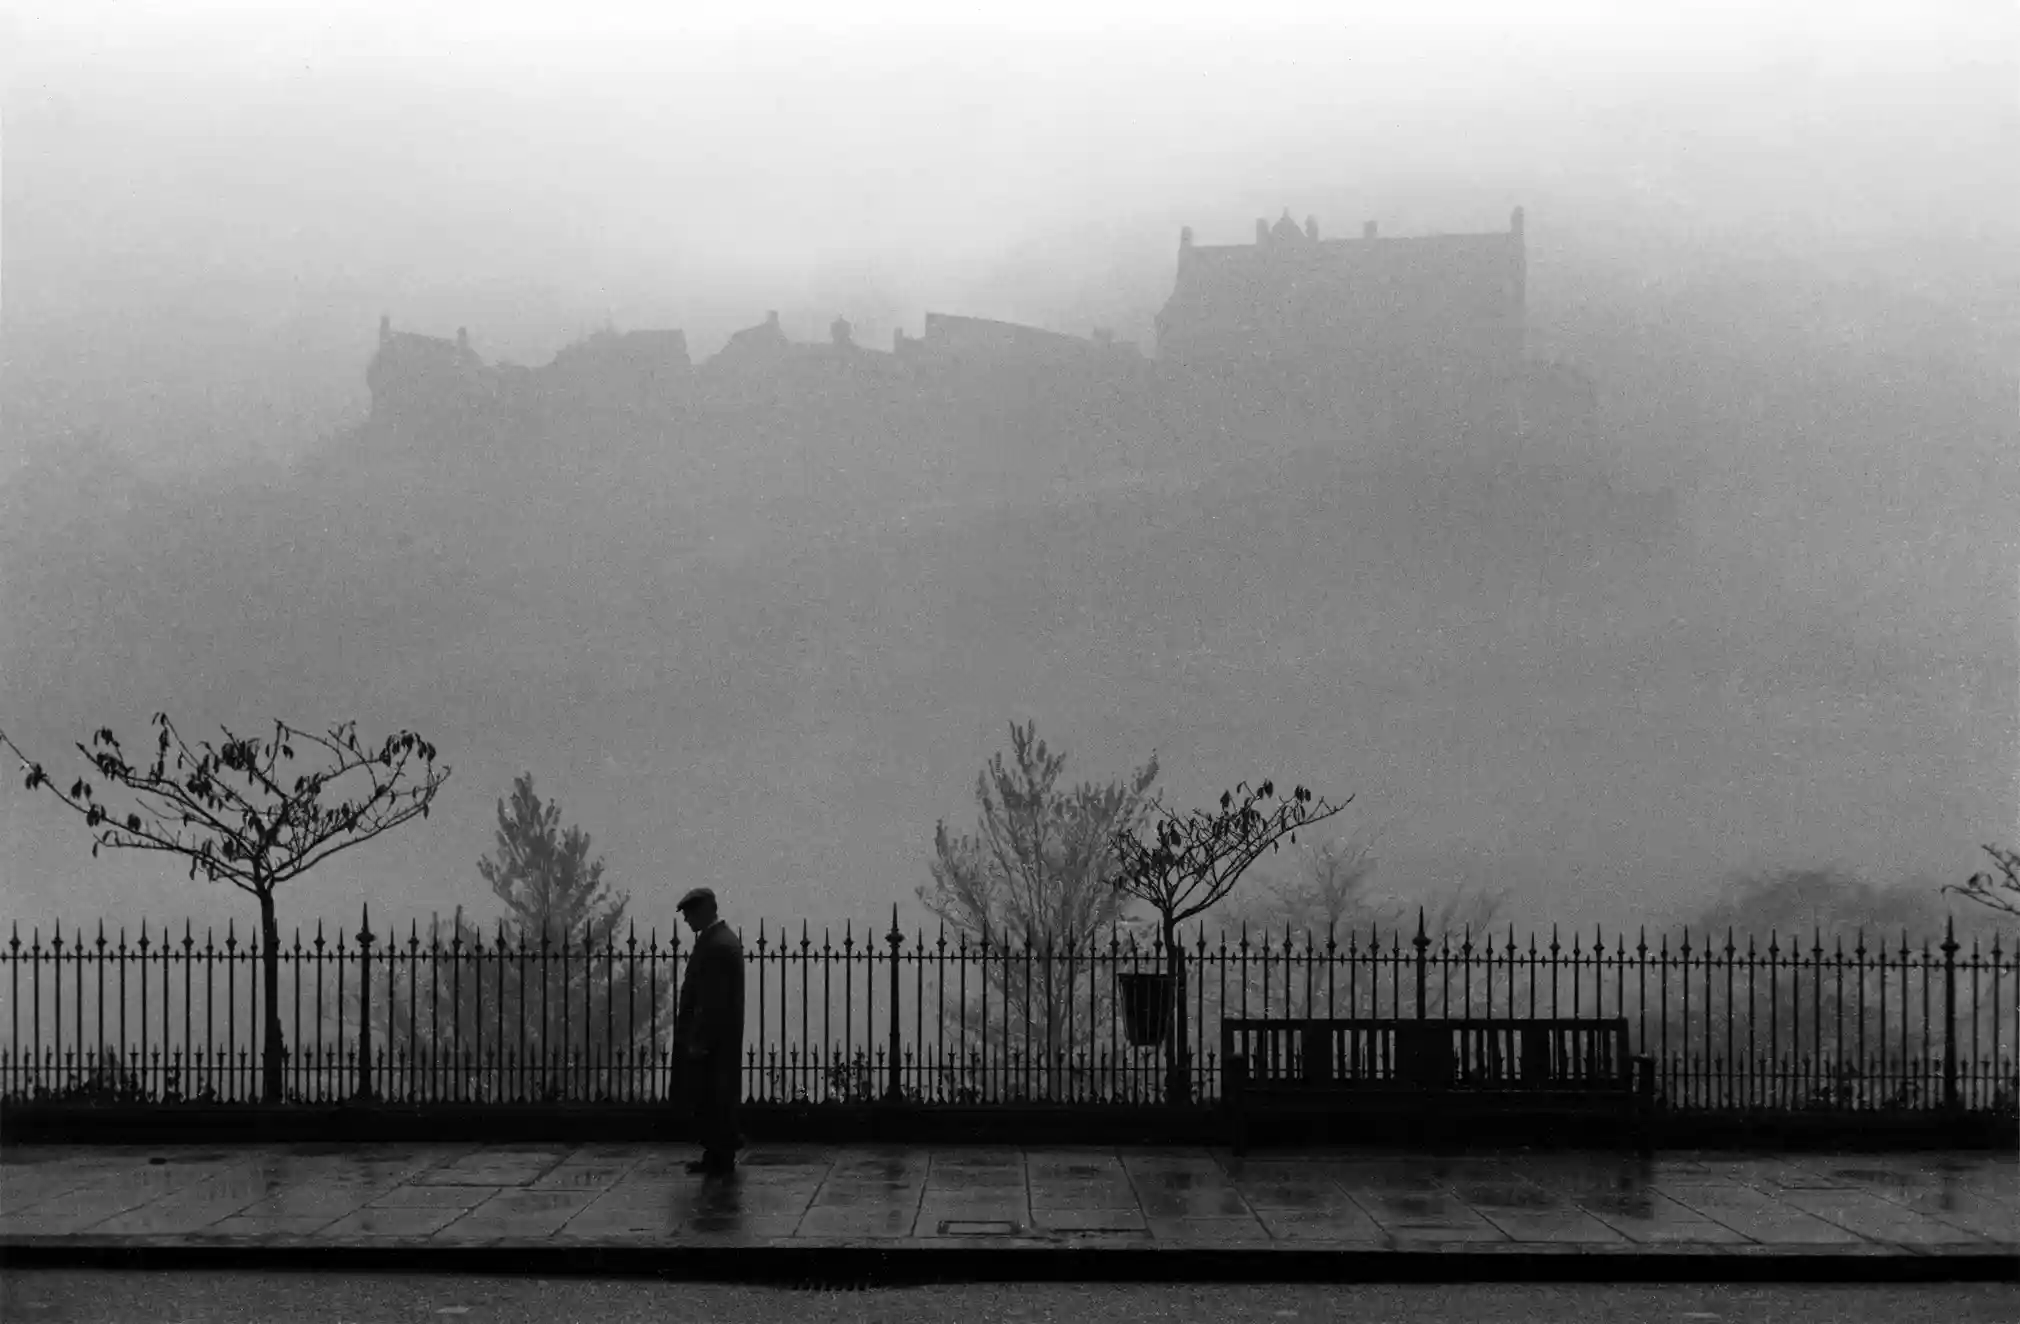 Blomfield's photography retrieved from The Guardian | https://www.theguardian.com/artanddesign/gallery/2021/feb/23/vintage-photographs-edinburgh-in-pictures-robert-blomfield-photography